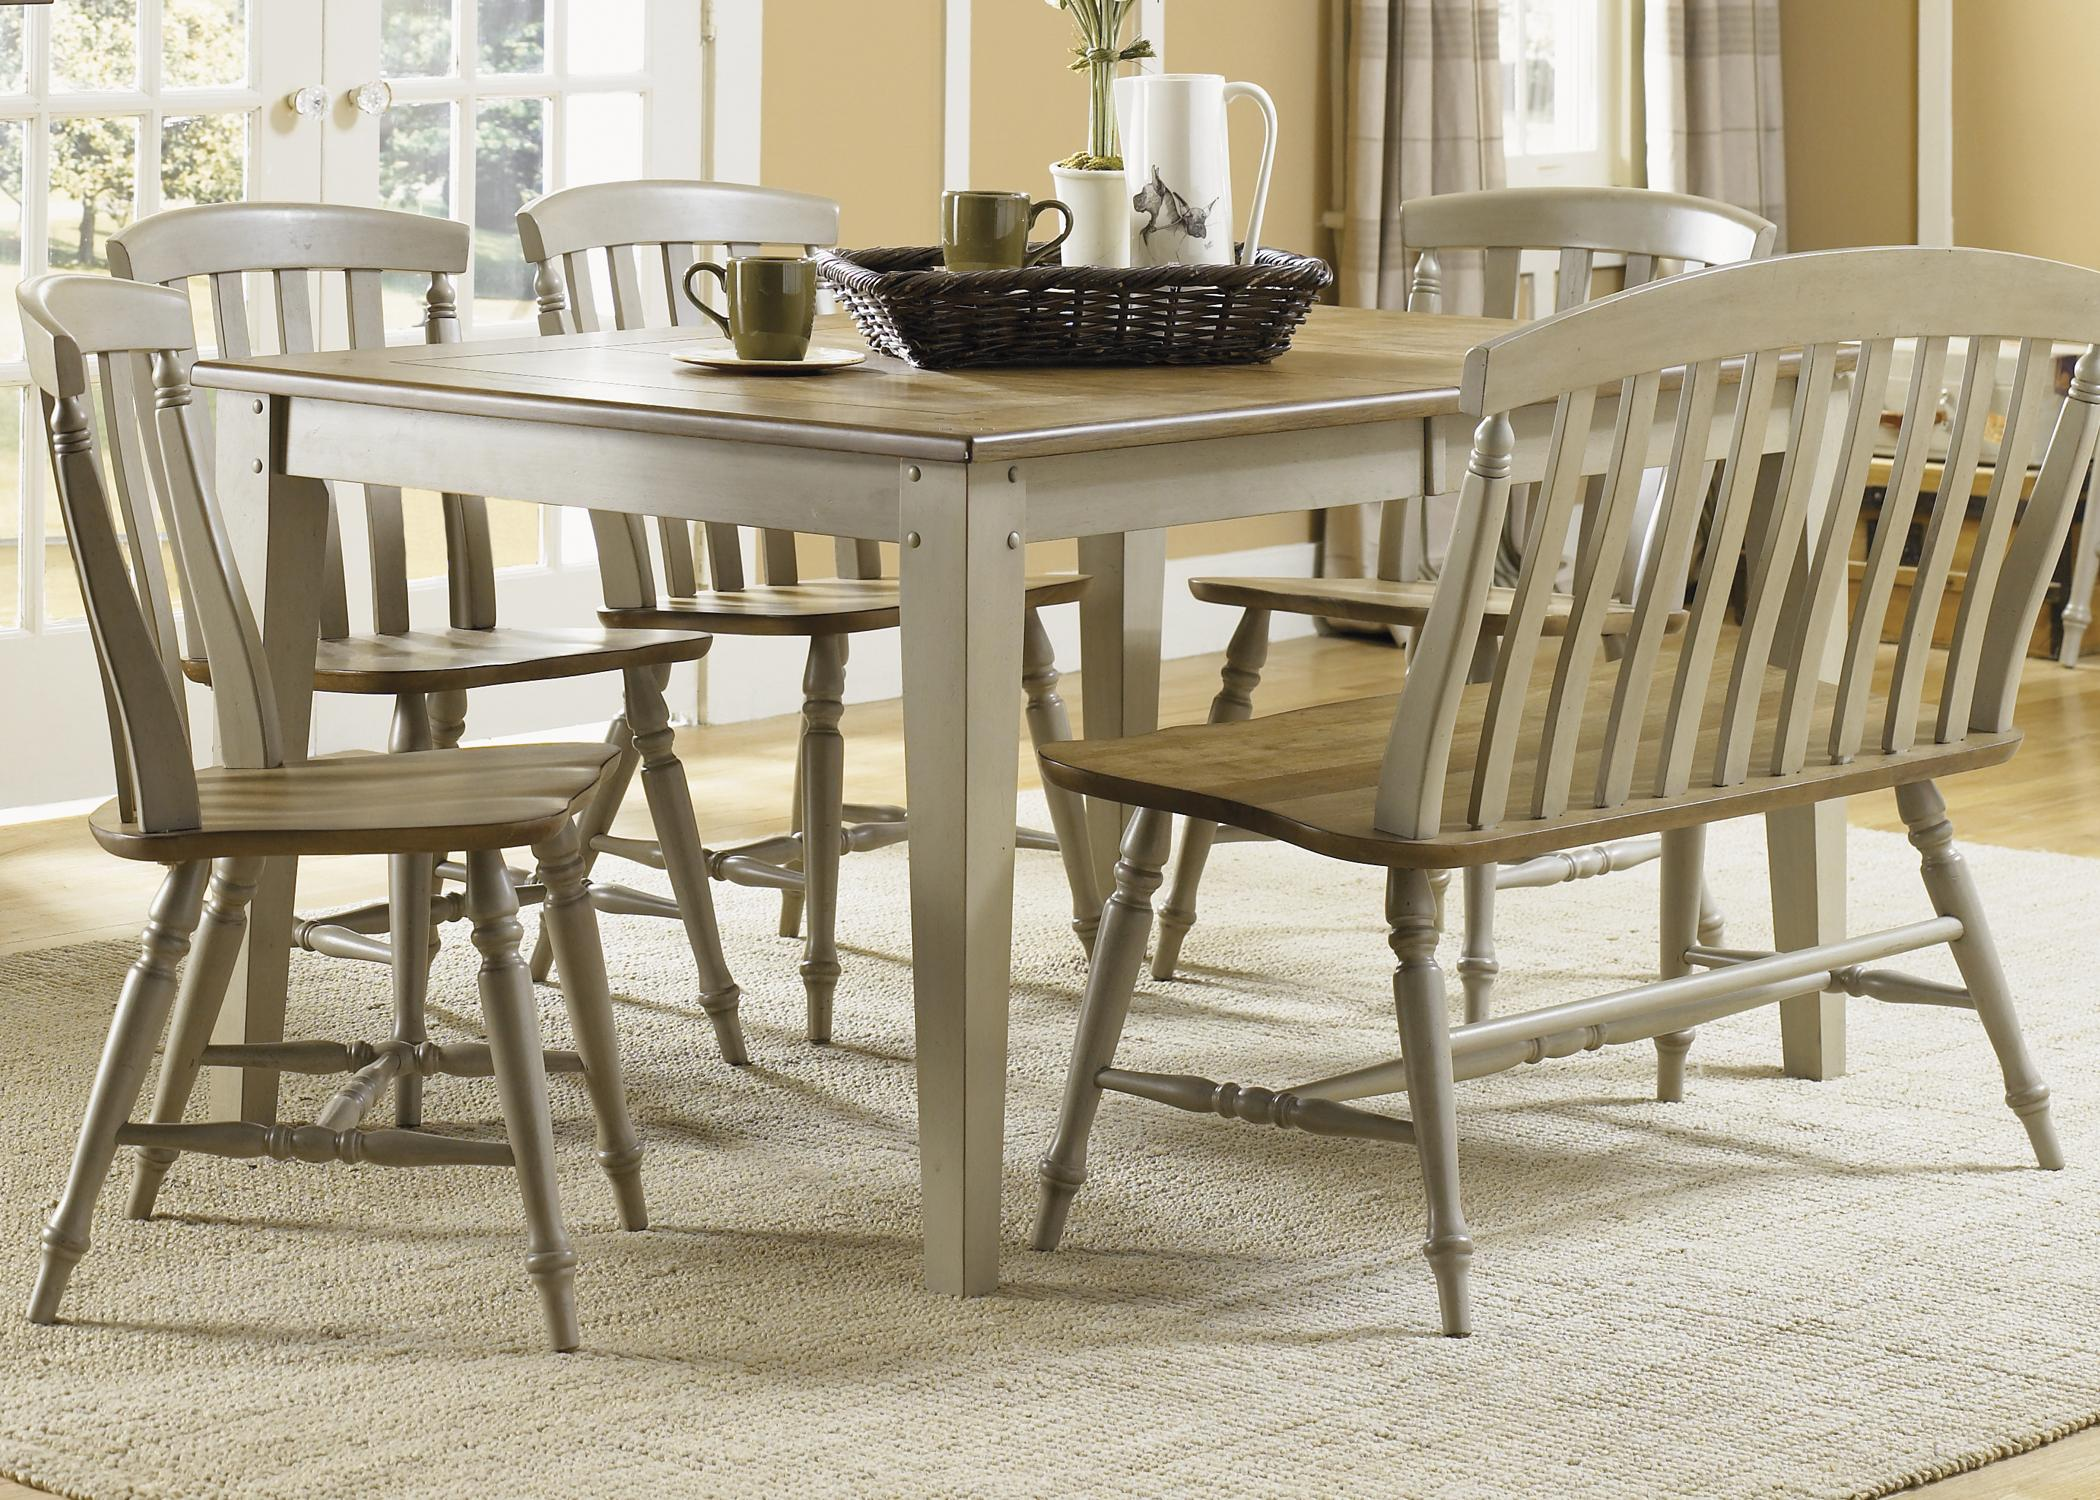 Al Fresco 6 Piece Dining Table and Chairs Set by Liberty Furniture at Lapeer Furniture & Mattress Center